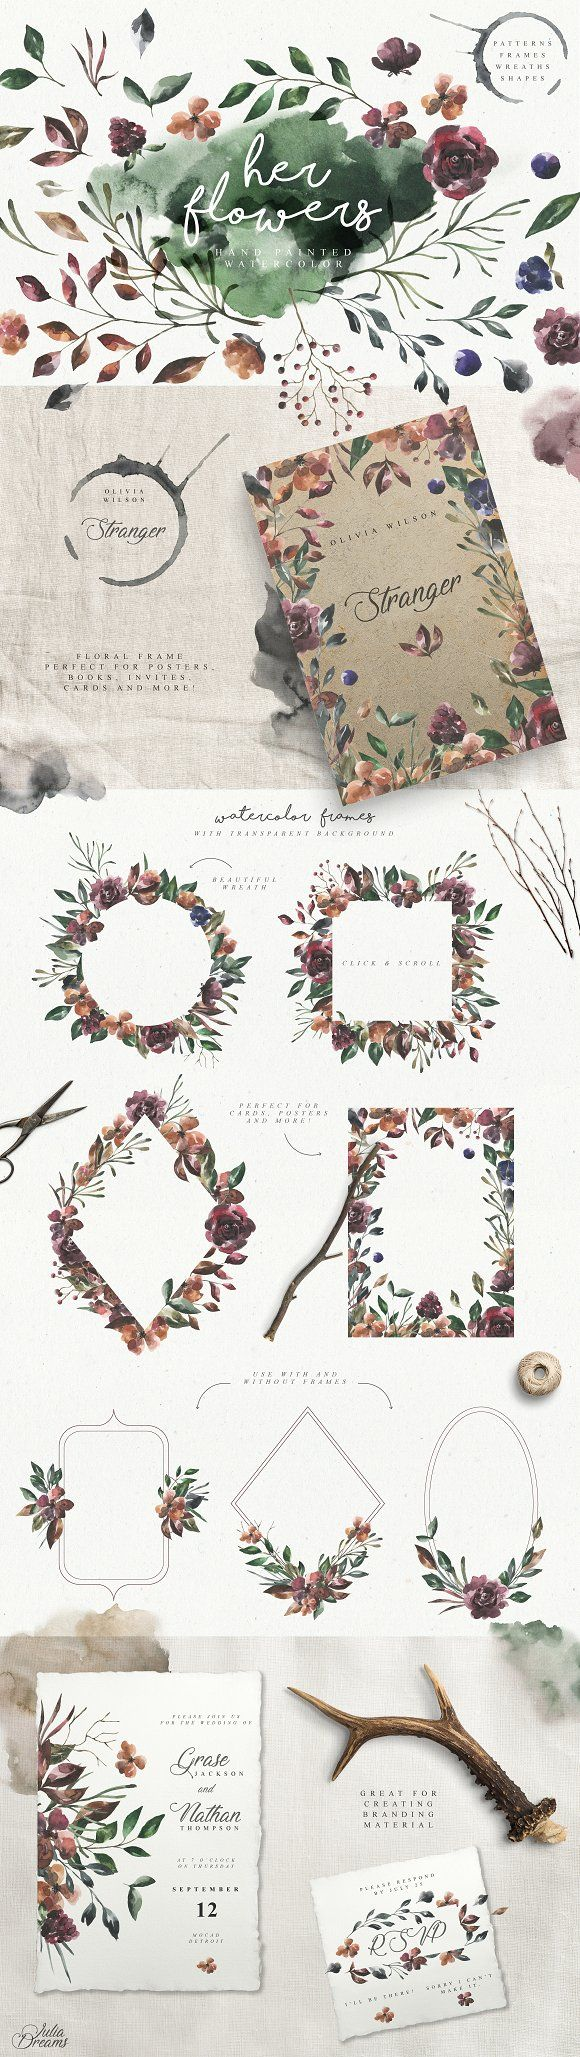 Her Flowers by Julia Dreams on @creativemarket